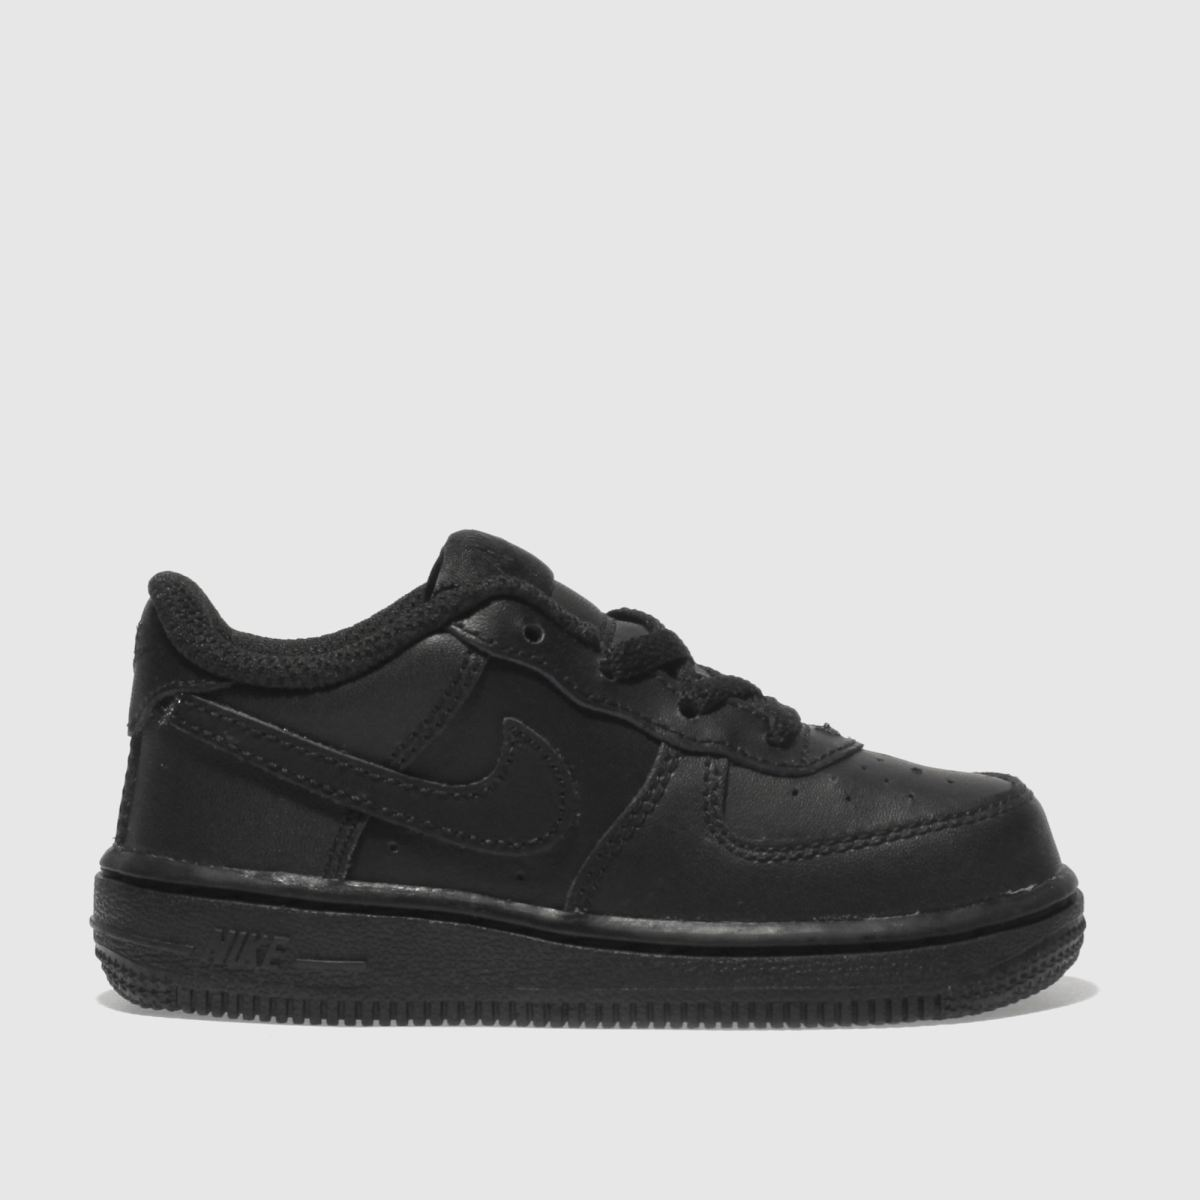 Nike Black Air Force 1 Unisex Toddler Toddler